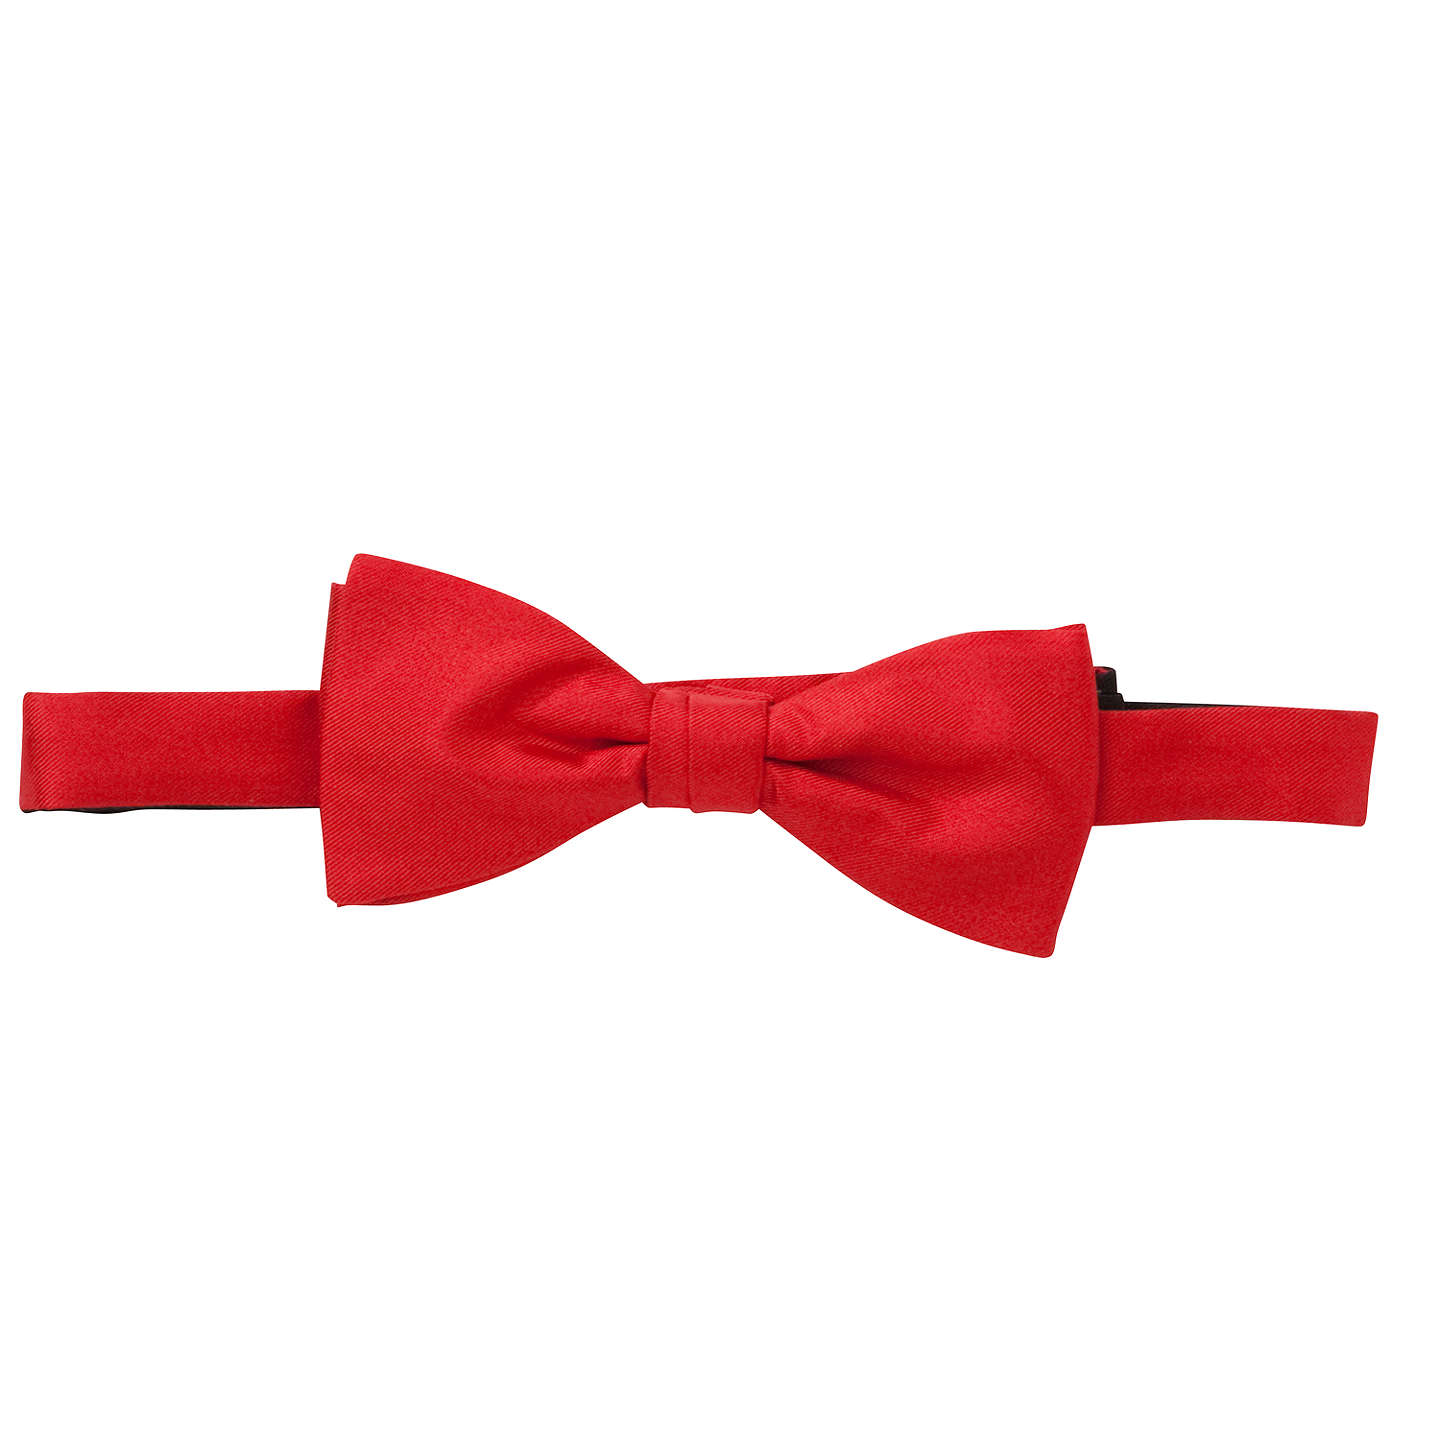 BuyJohn Lewis Silk Ready Tied Bow Tie, Red, One size Online at johnlewis.com